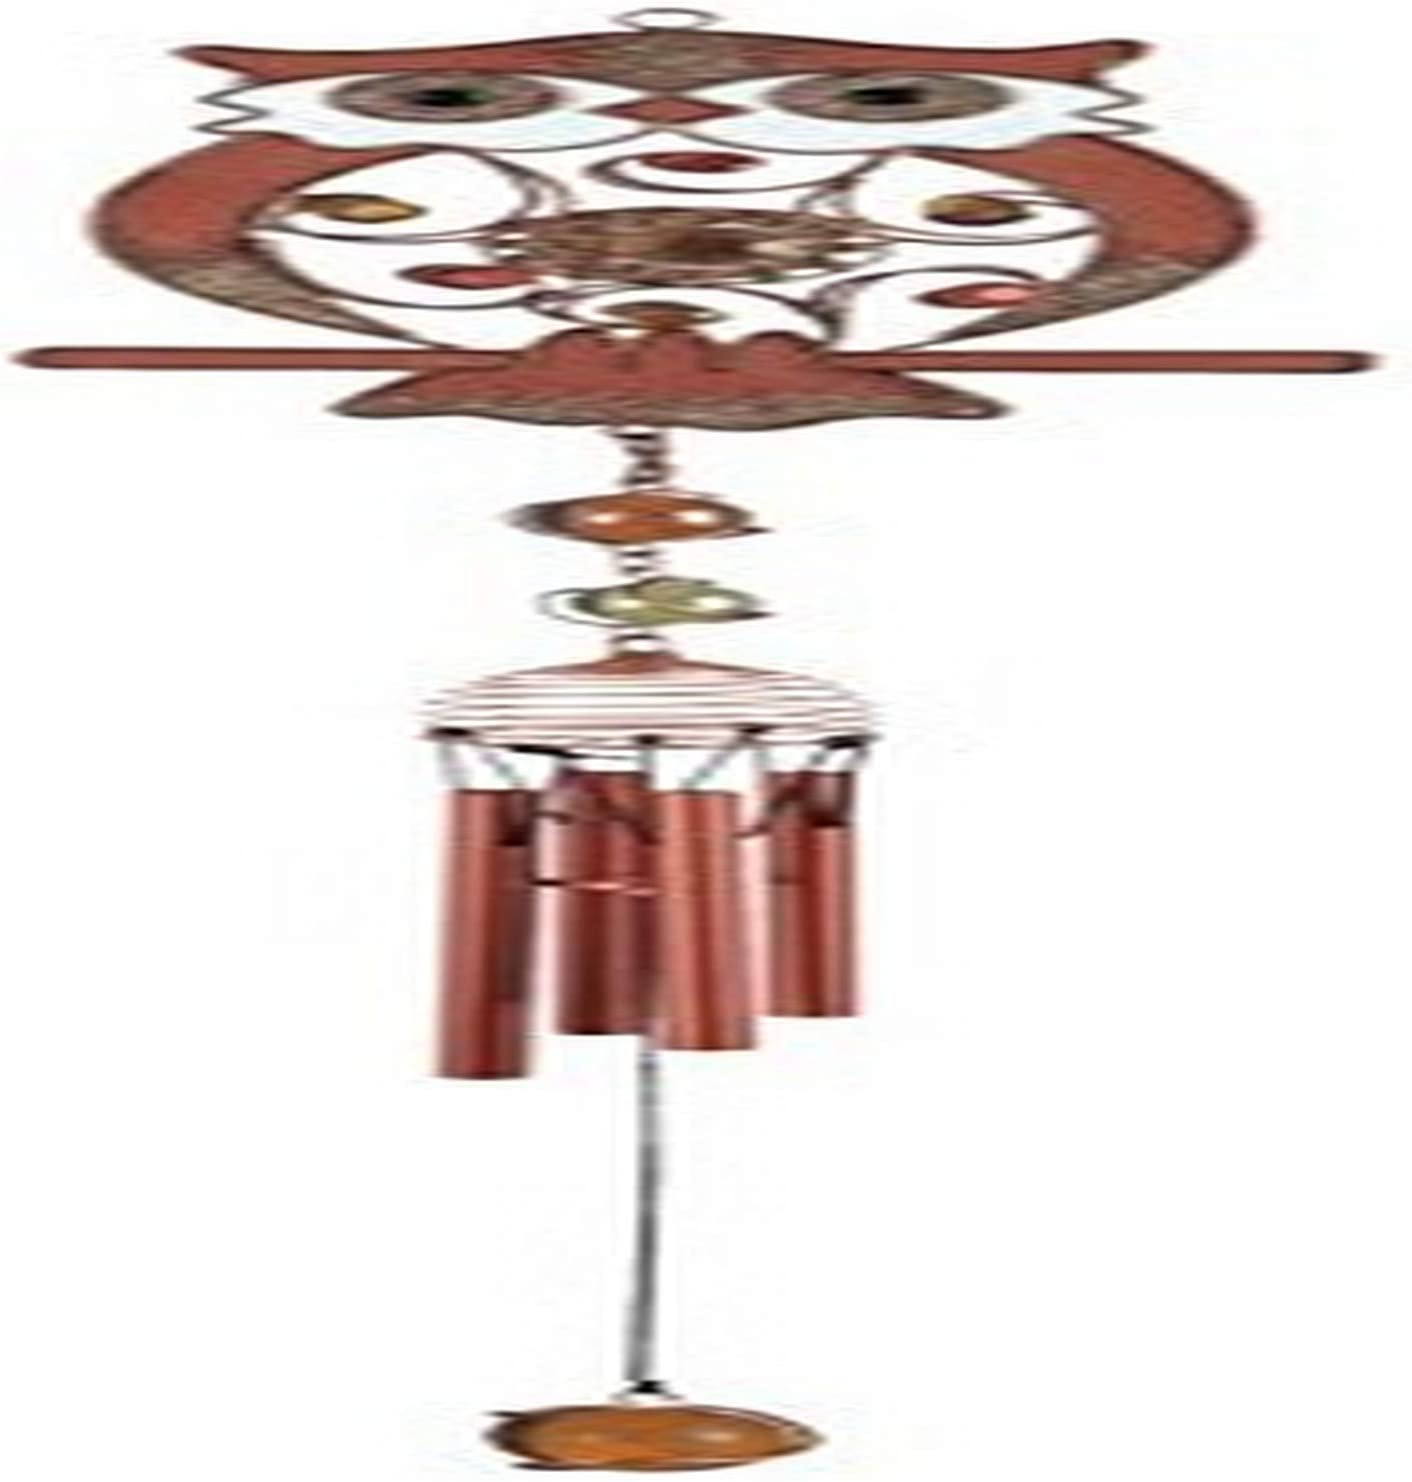 George S. Tucson Mall Chen Imports Copper Limited time for free shipping Windchime 26